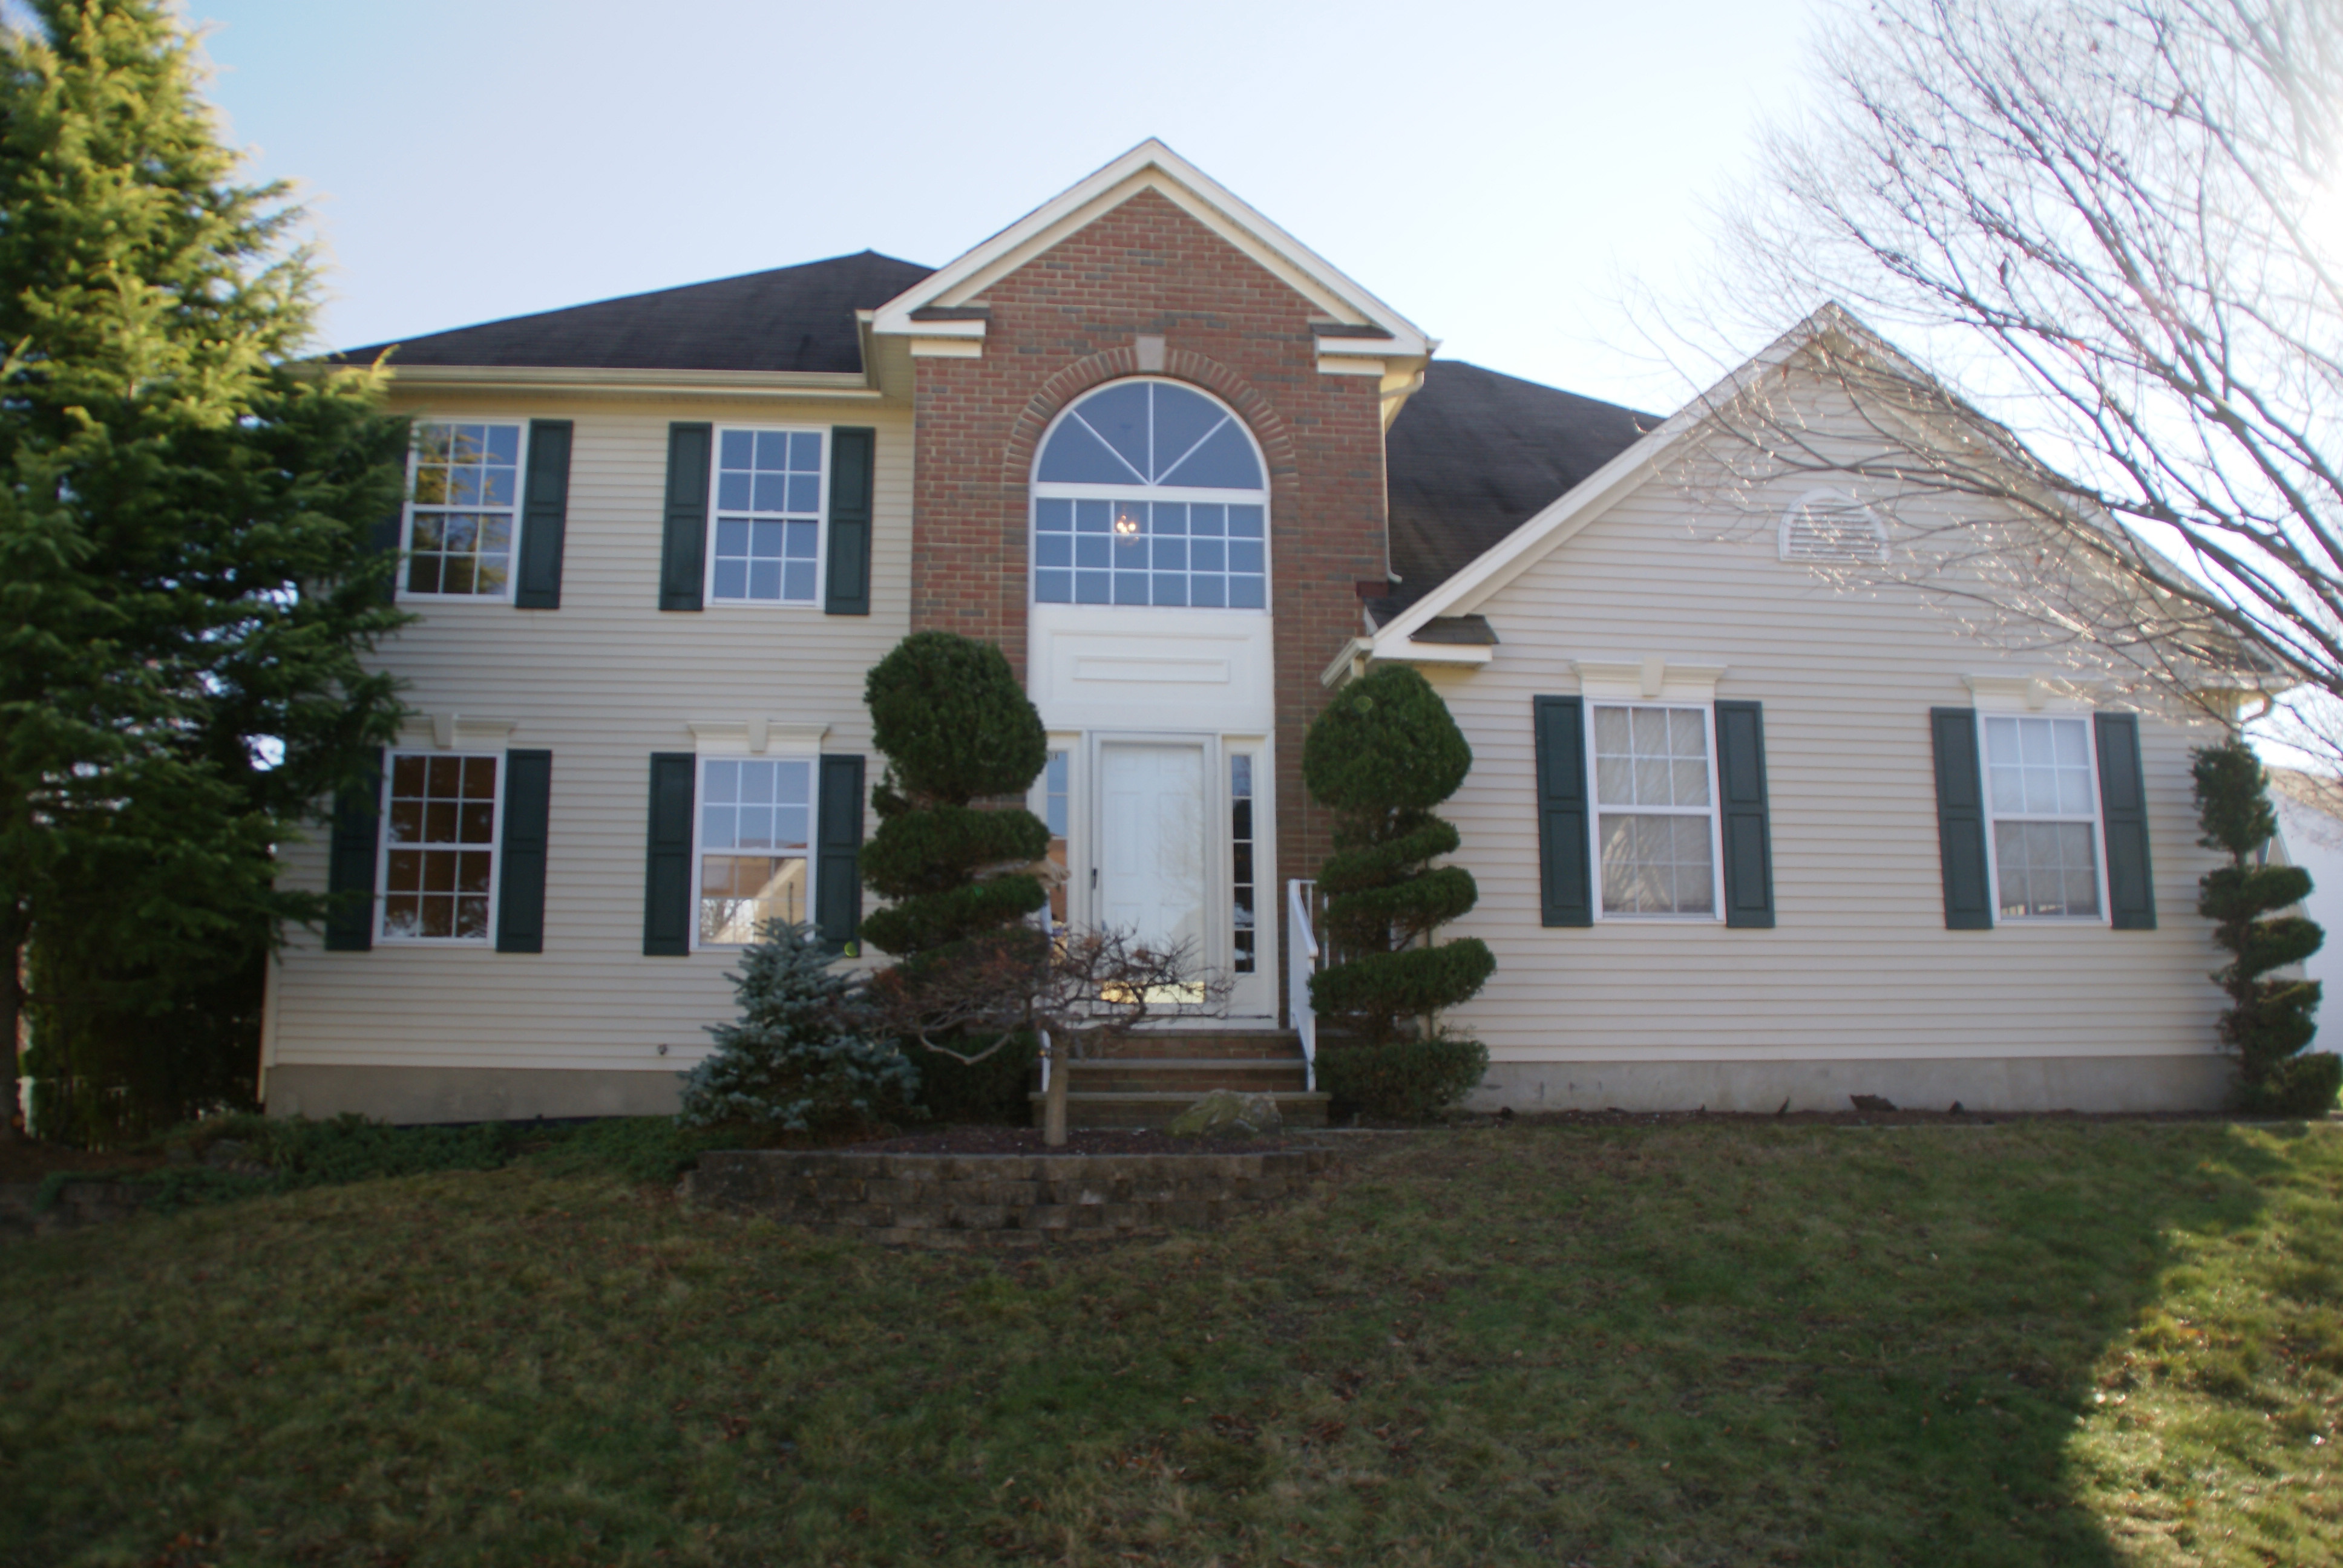 38 Constitution Way, South River, NJ 08882